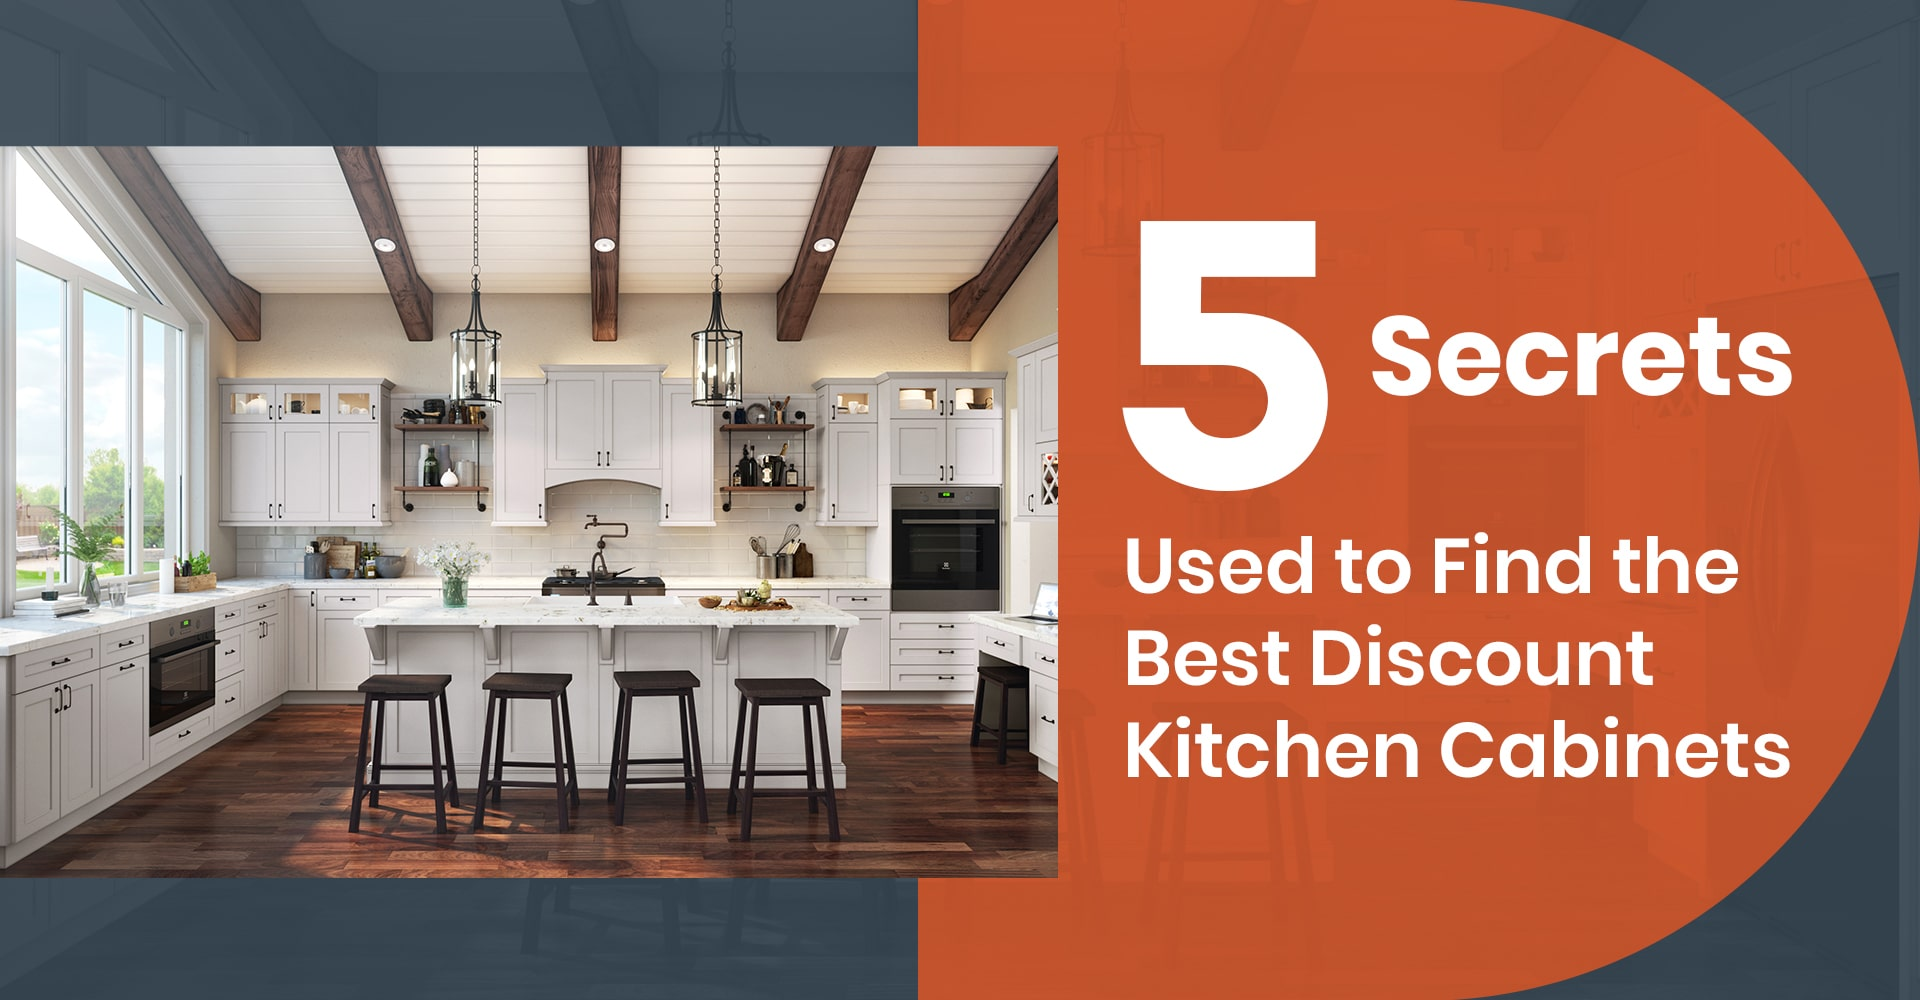 5 Secrets to Find the Best Discount Kitch-en Cabinets